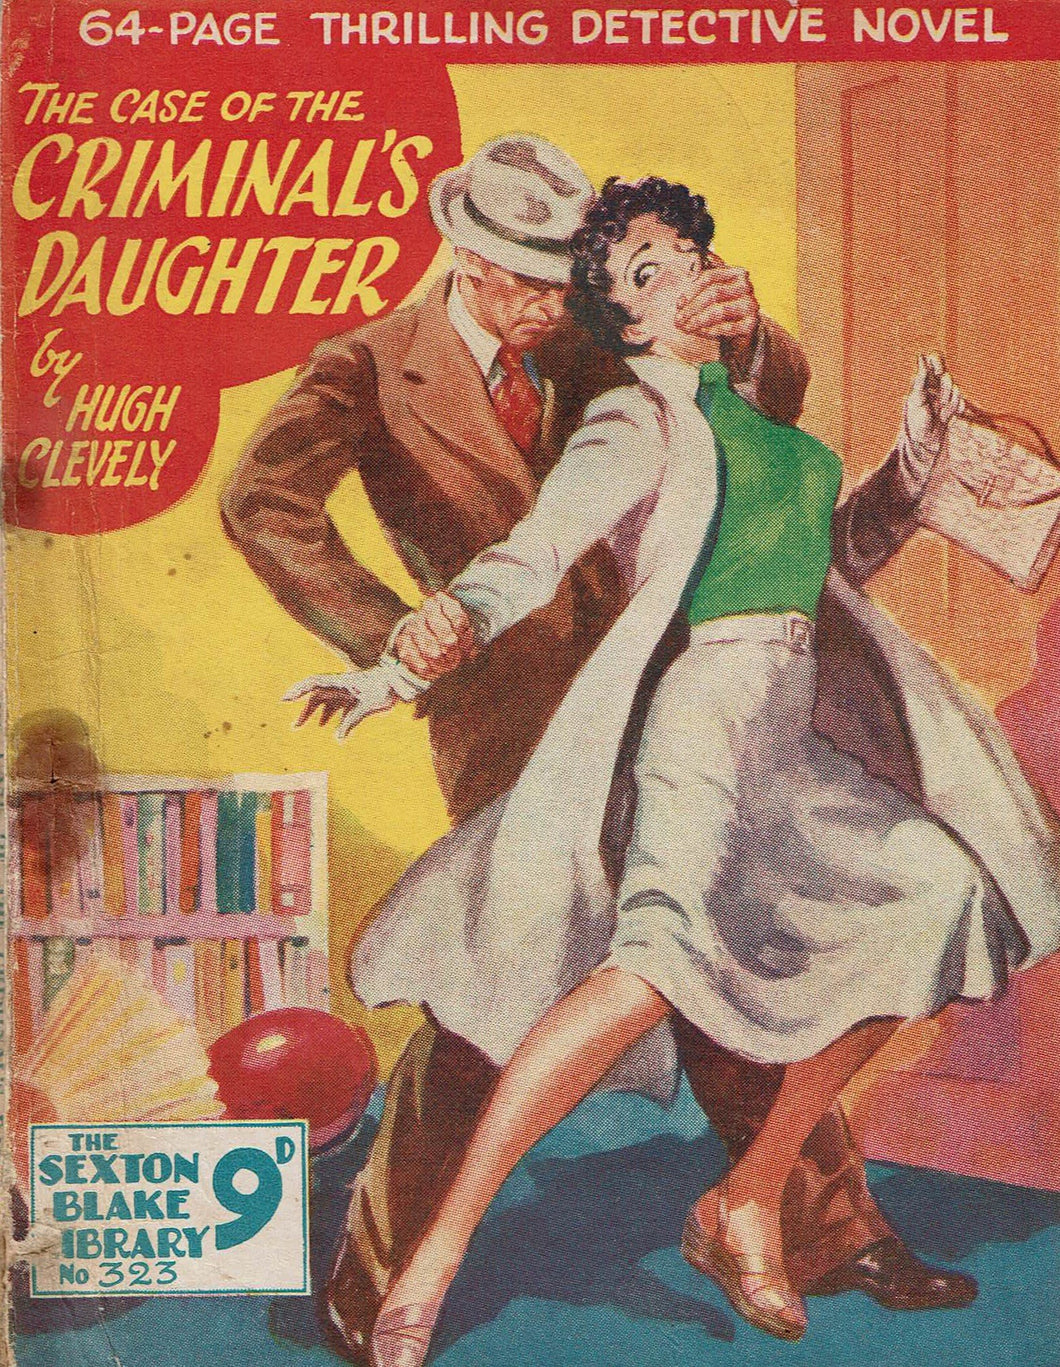 The Case of the Criminal's Daughter by Hugh Clevely [Sexton Blake Library # 323]